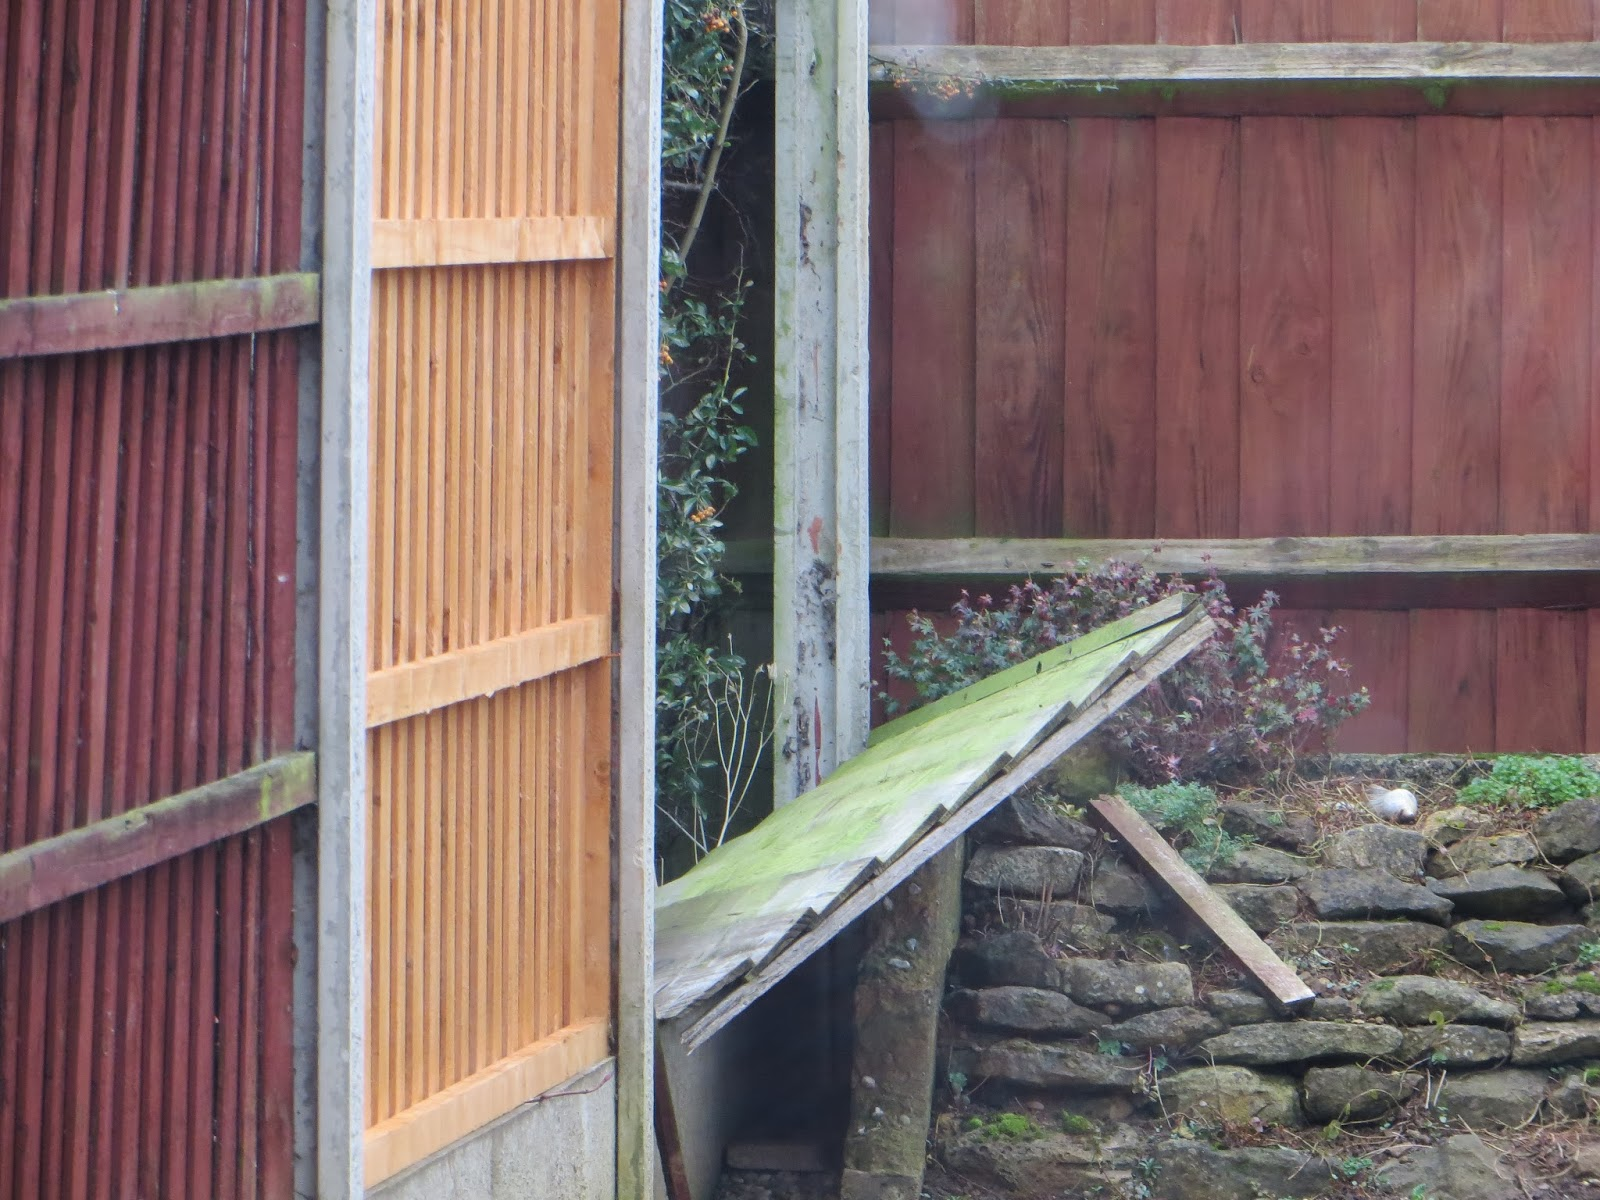 Fence panels destroyed in fierce gale force winds.